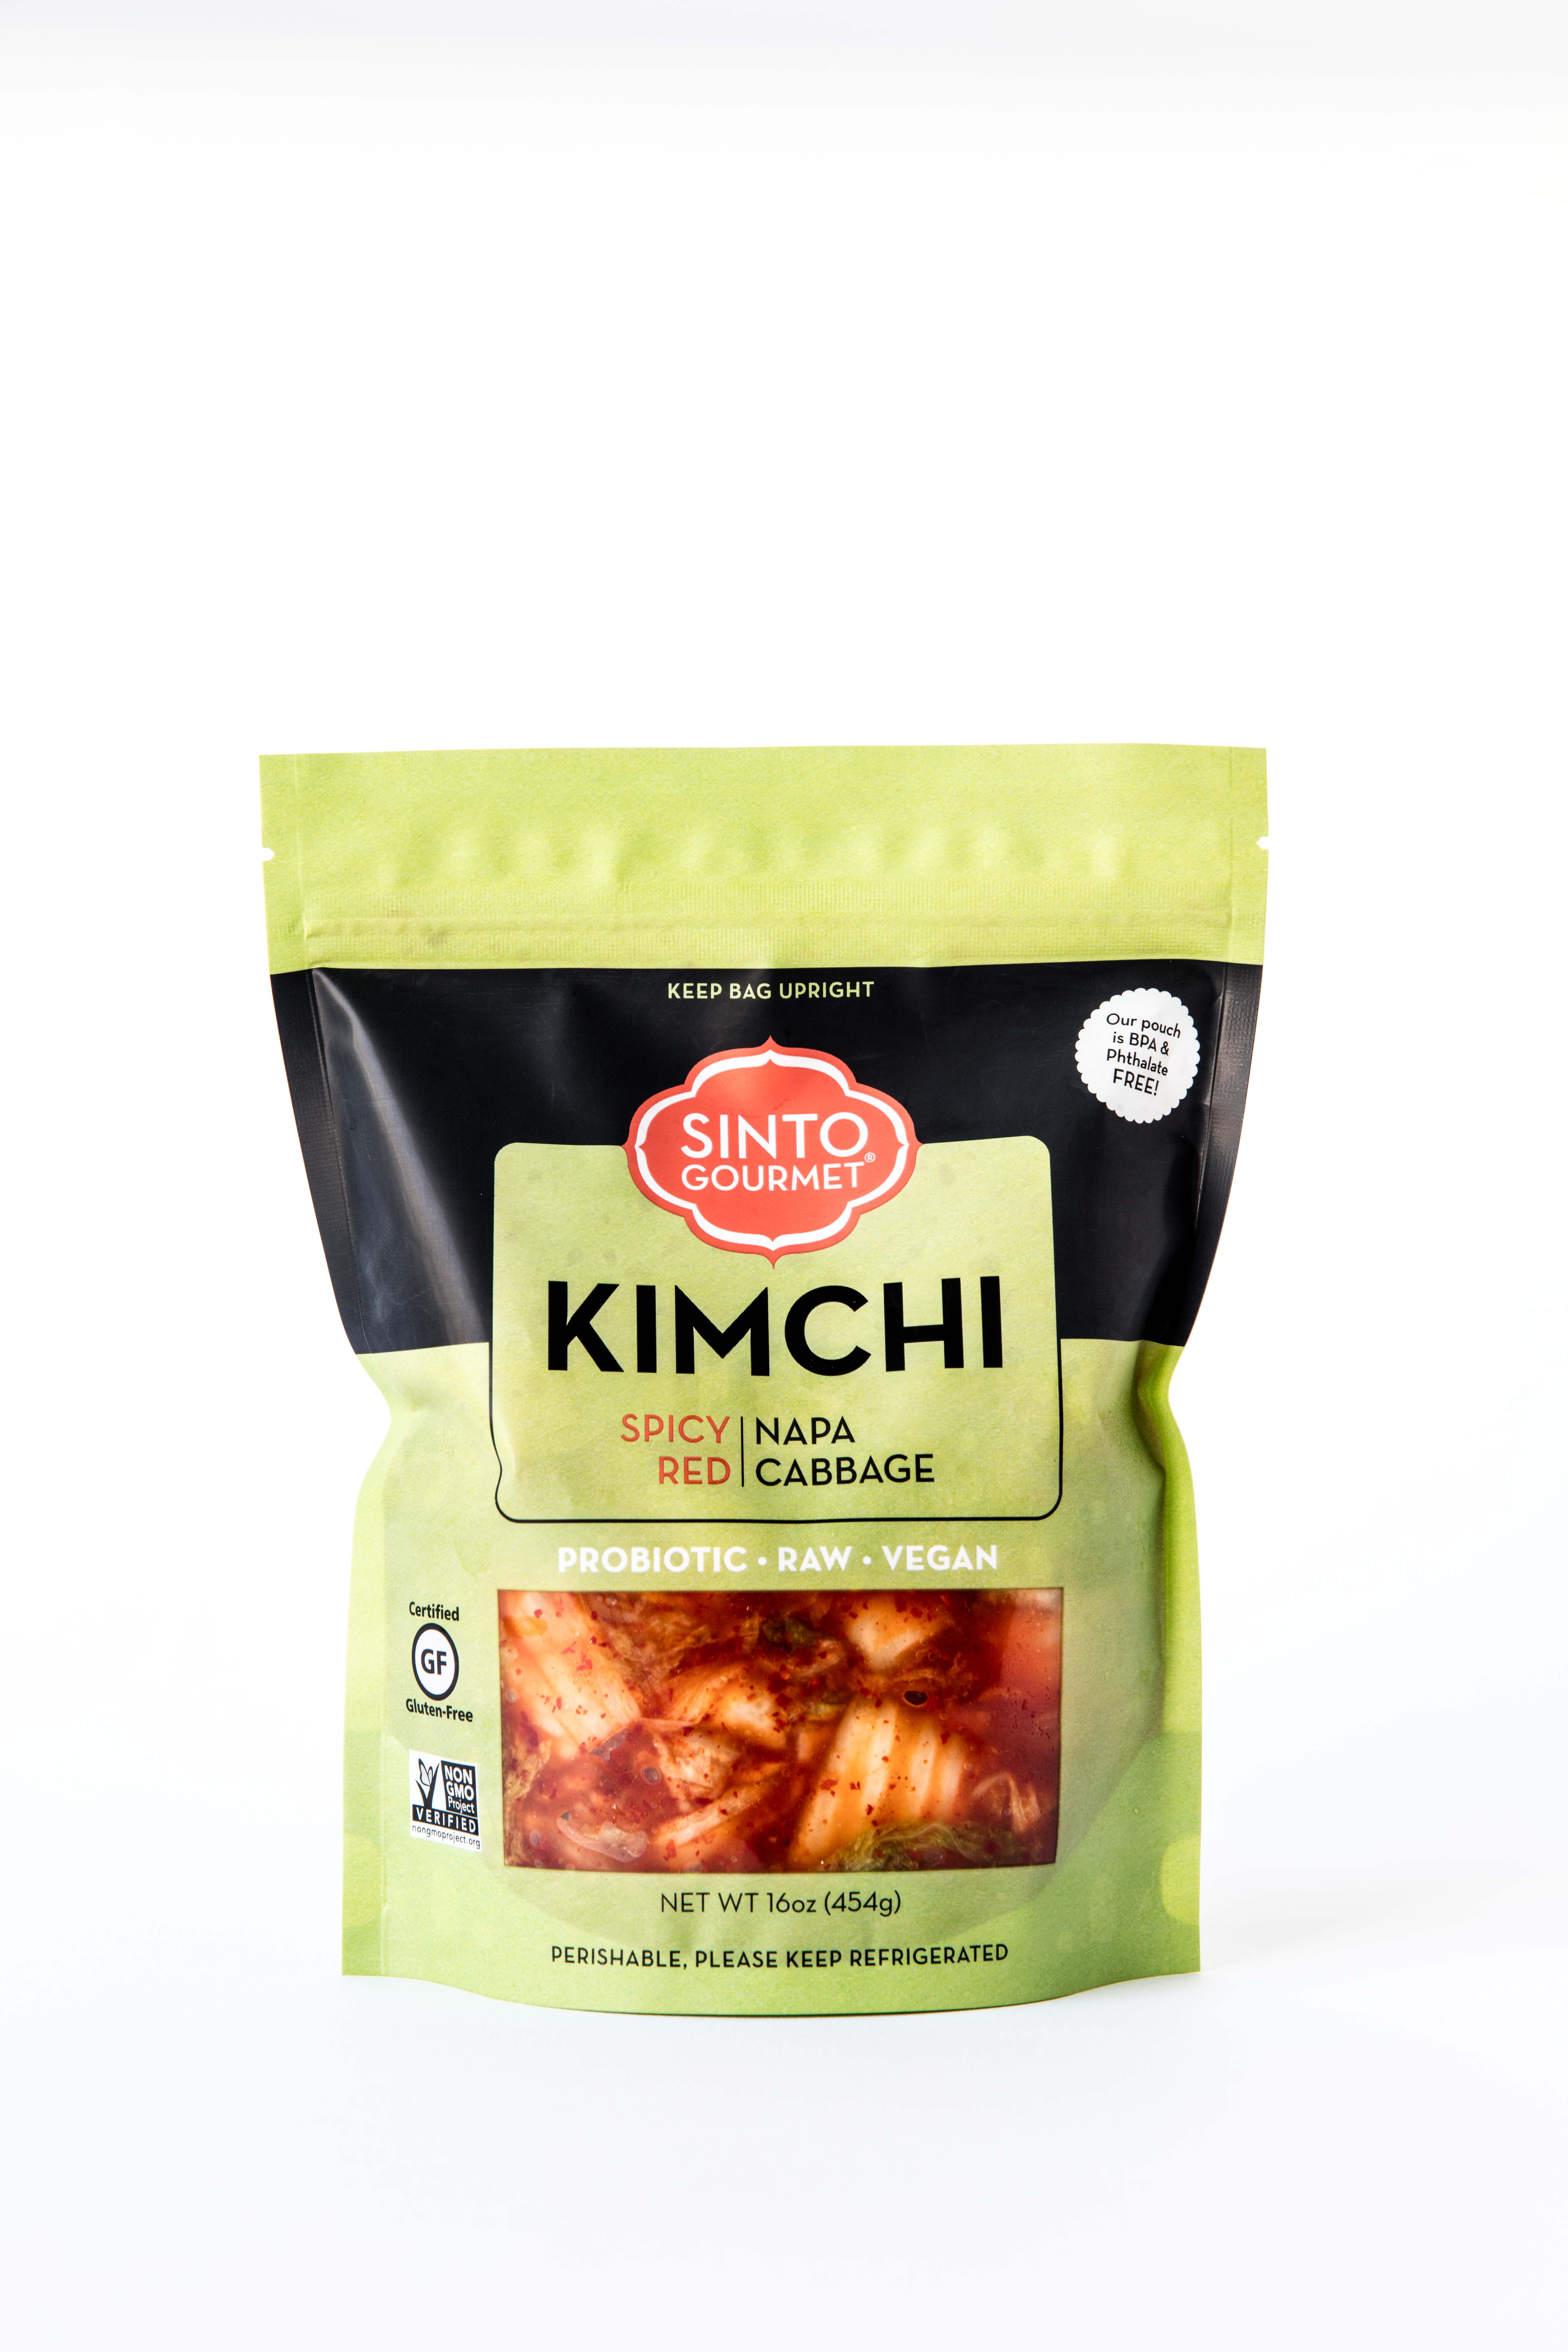 Raw and Vegan Authentic Kimchi by Sinto Gourmet